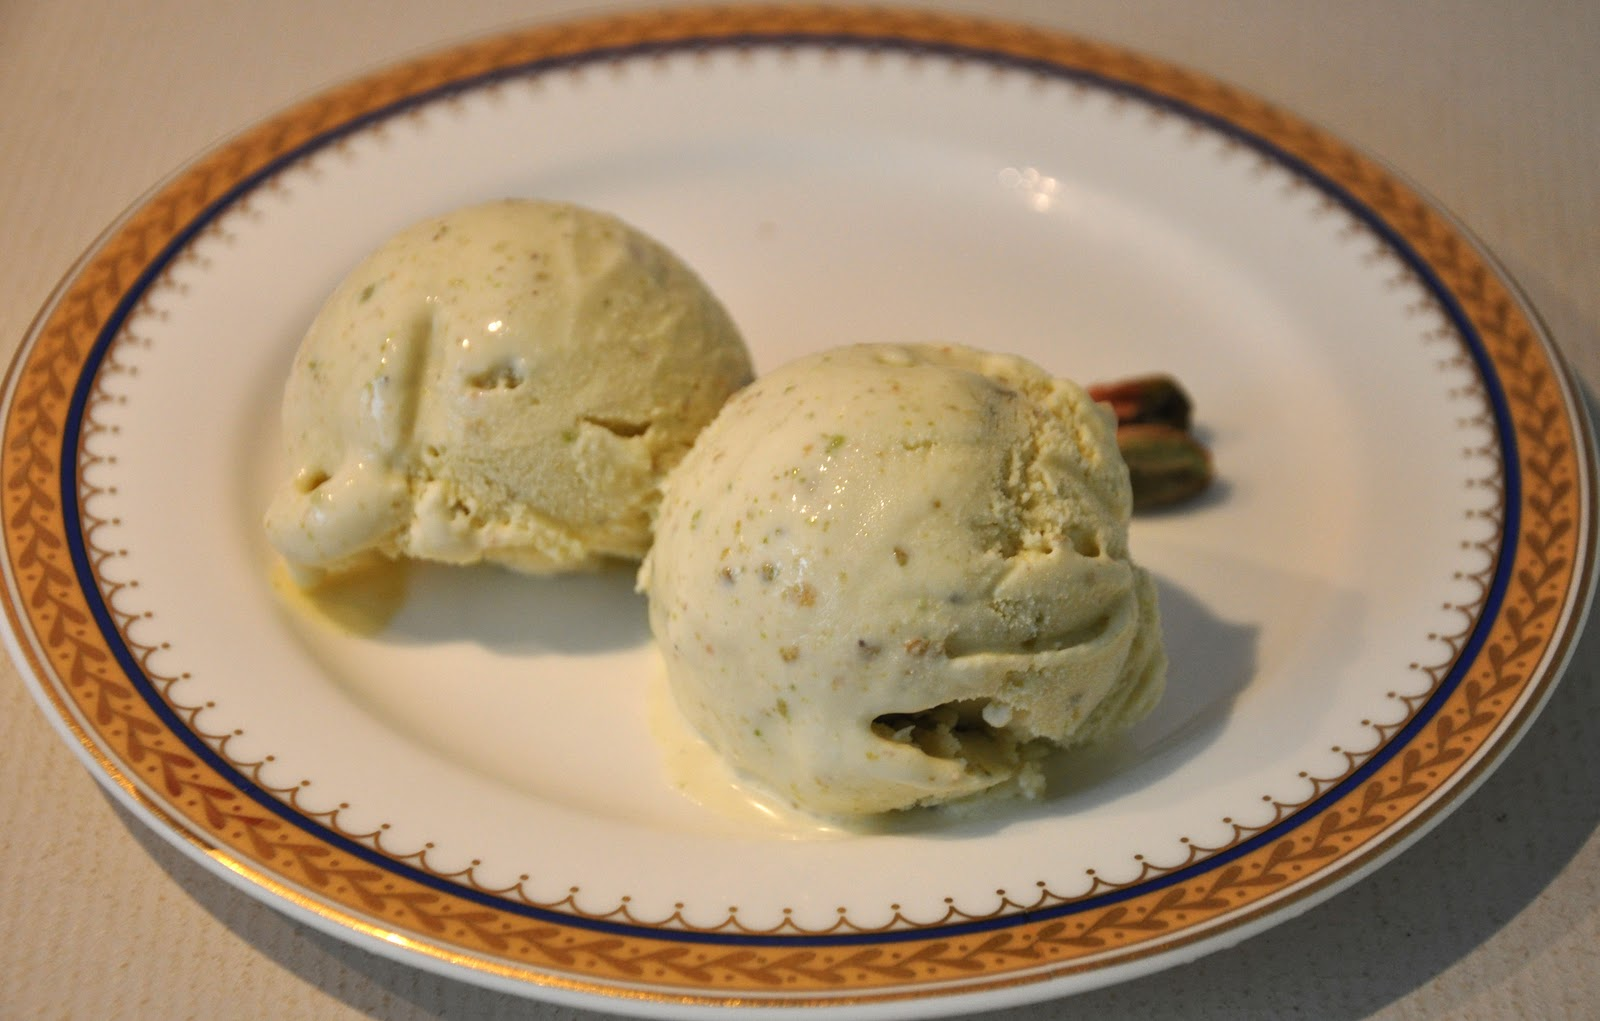 Roasted Pistachio Ice Cream with Cream Cheese | The Baking Bee